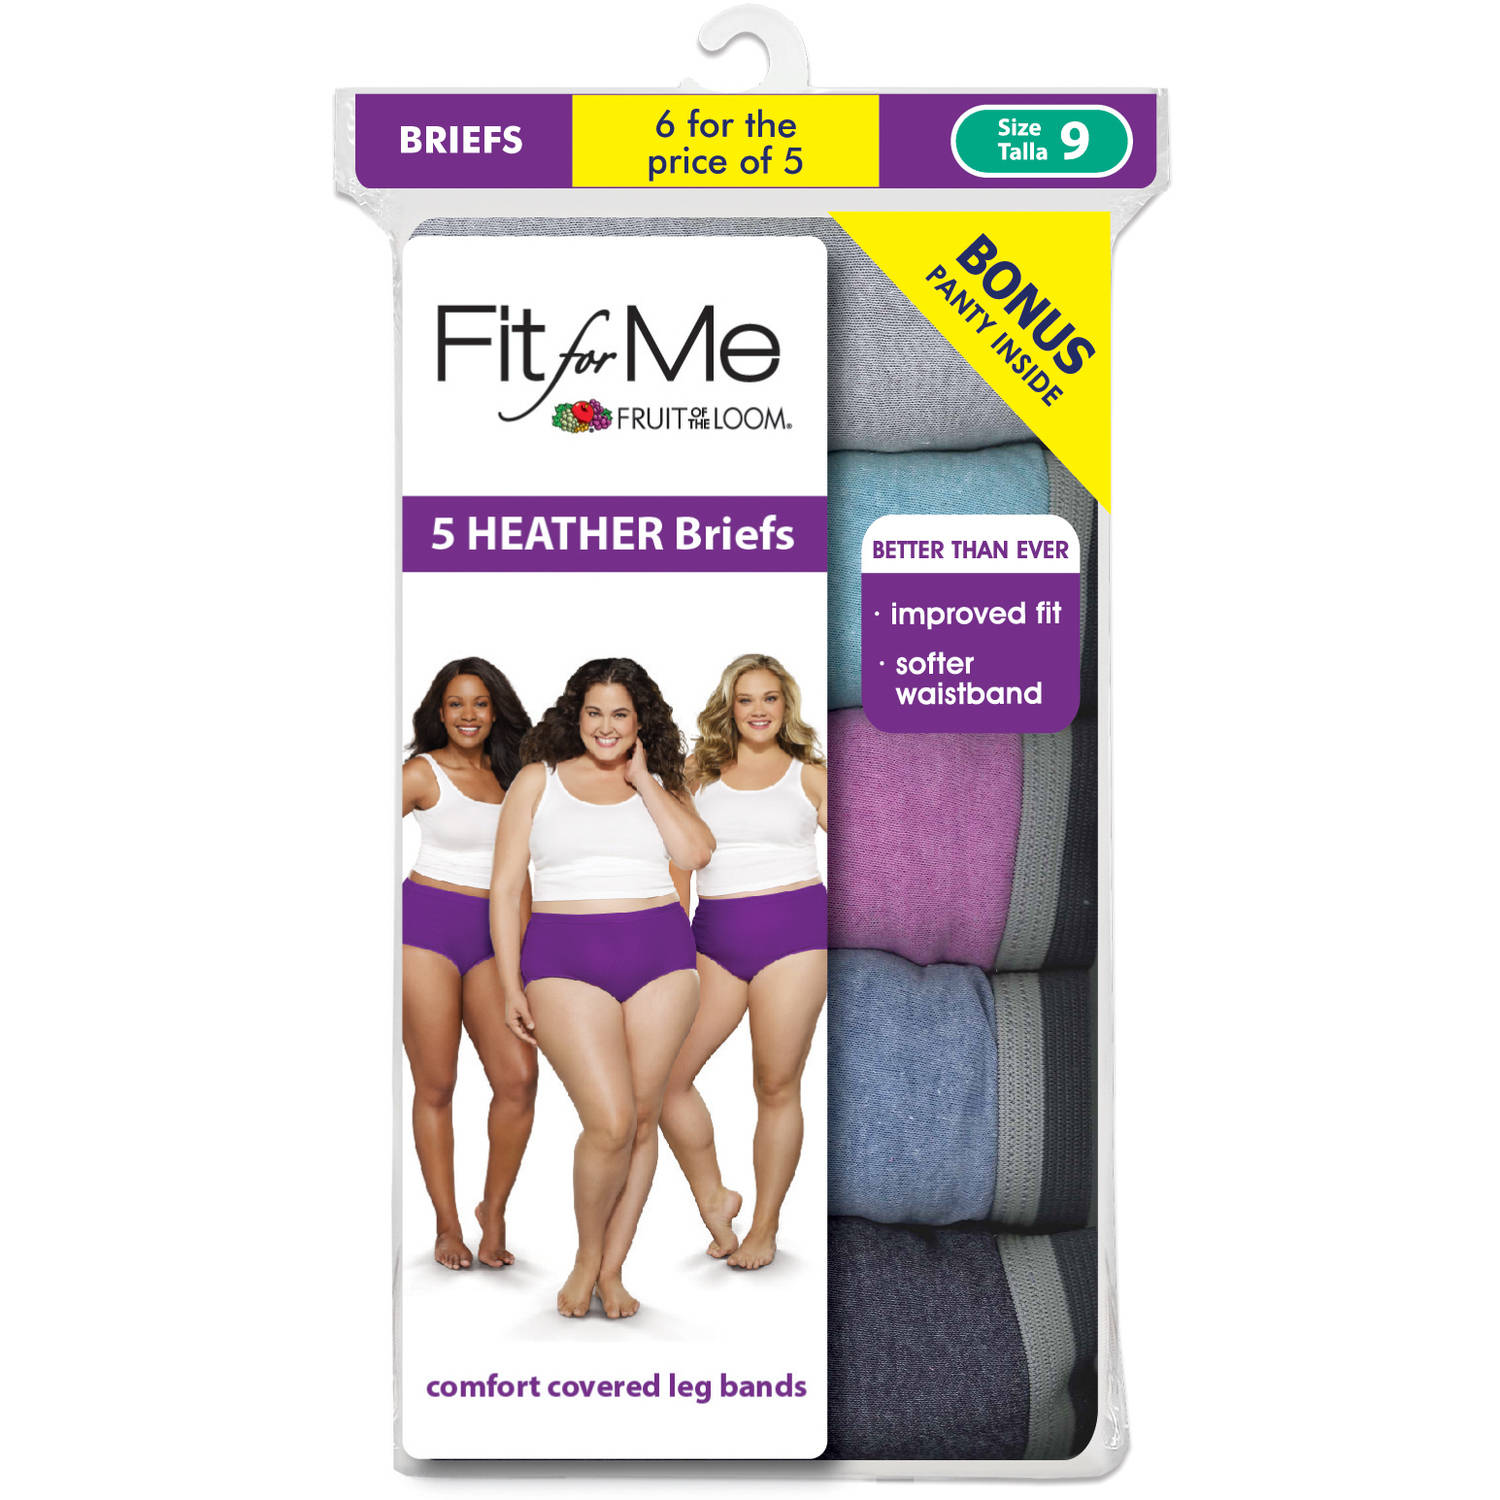 Fit for Me by Fruit of the Loom 5+1 bonus pack Heather Brief